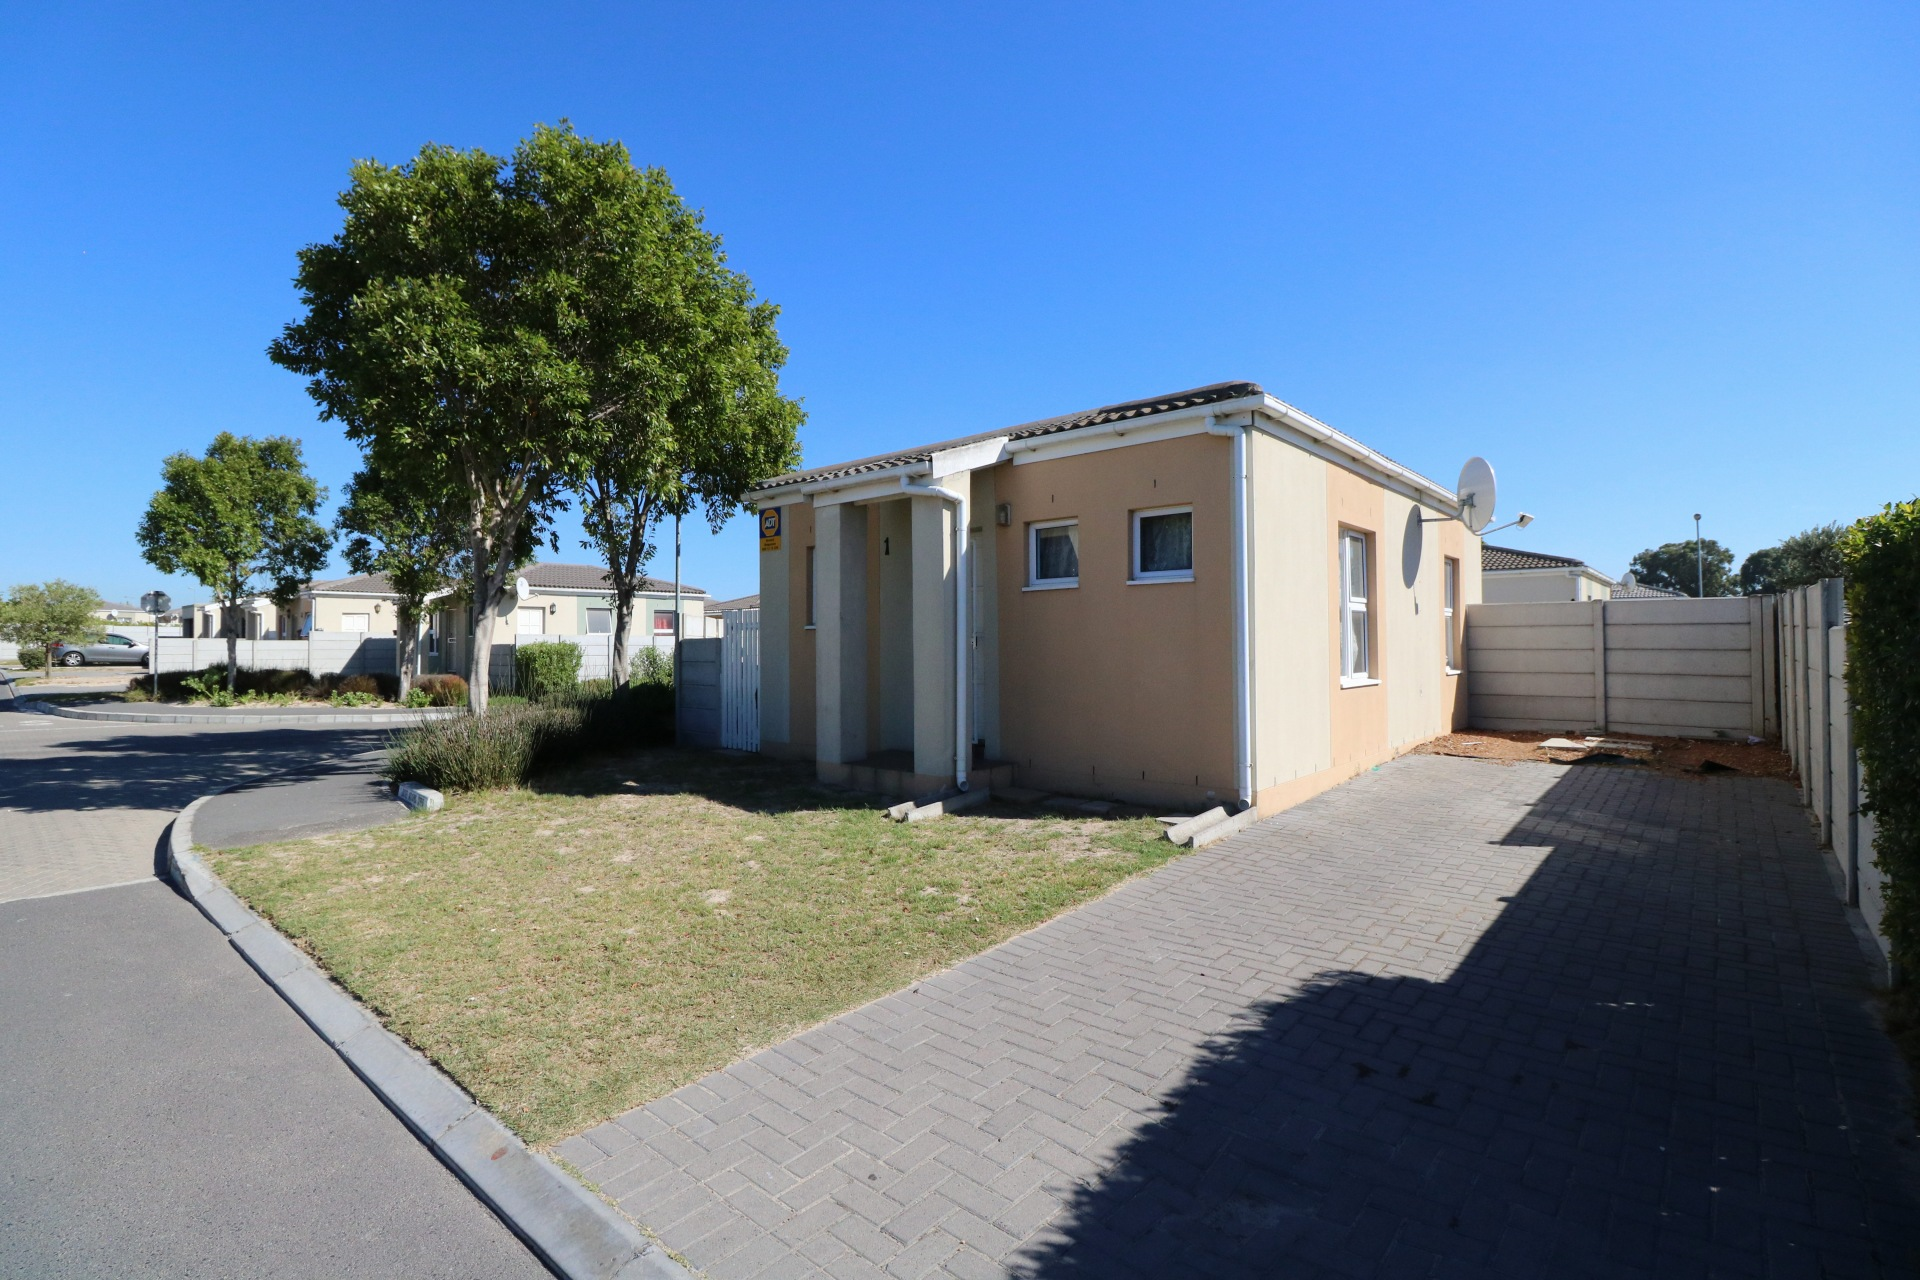 2 BedroomHouse For Sale In Blue Downs